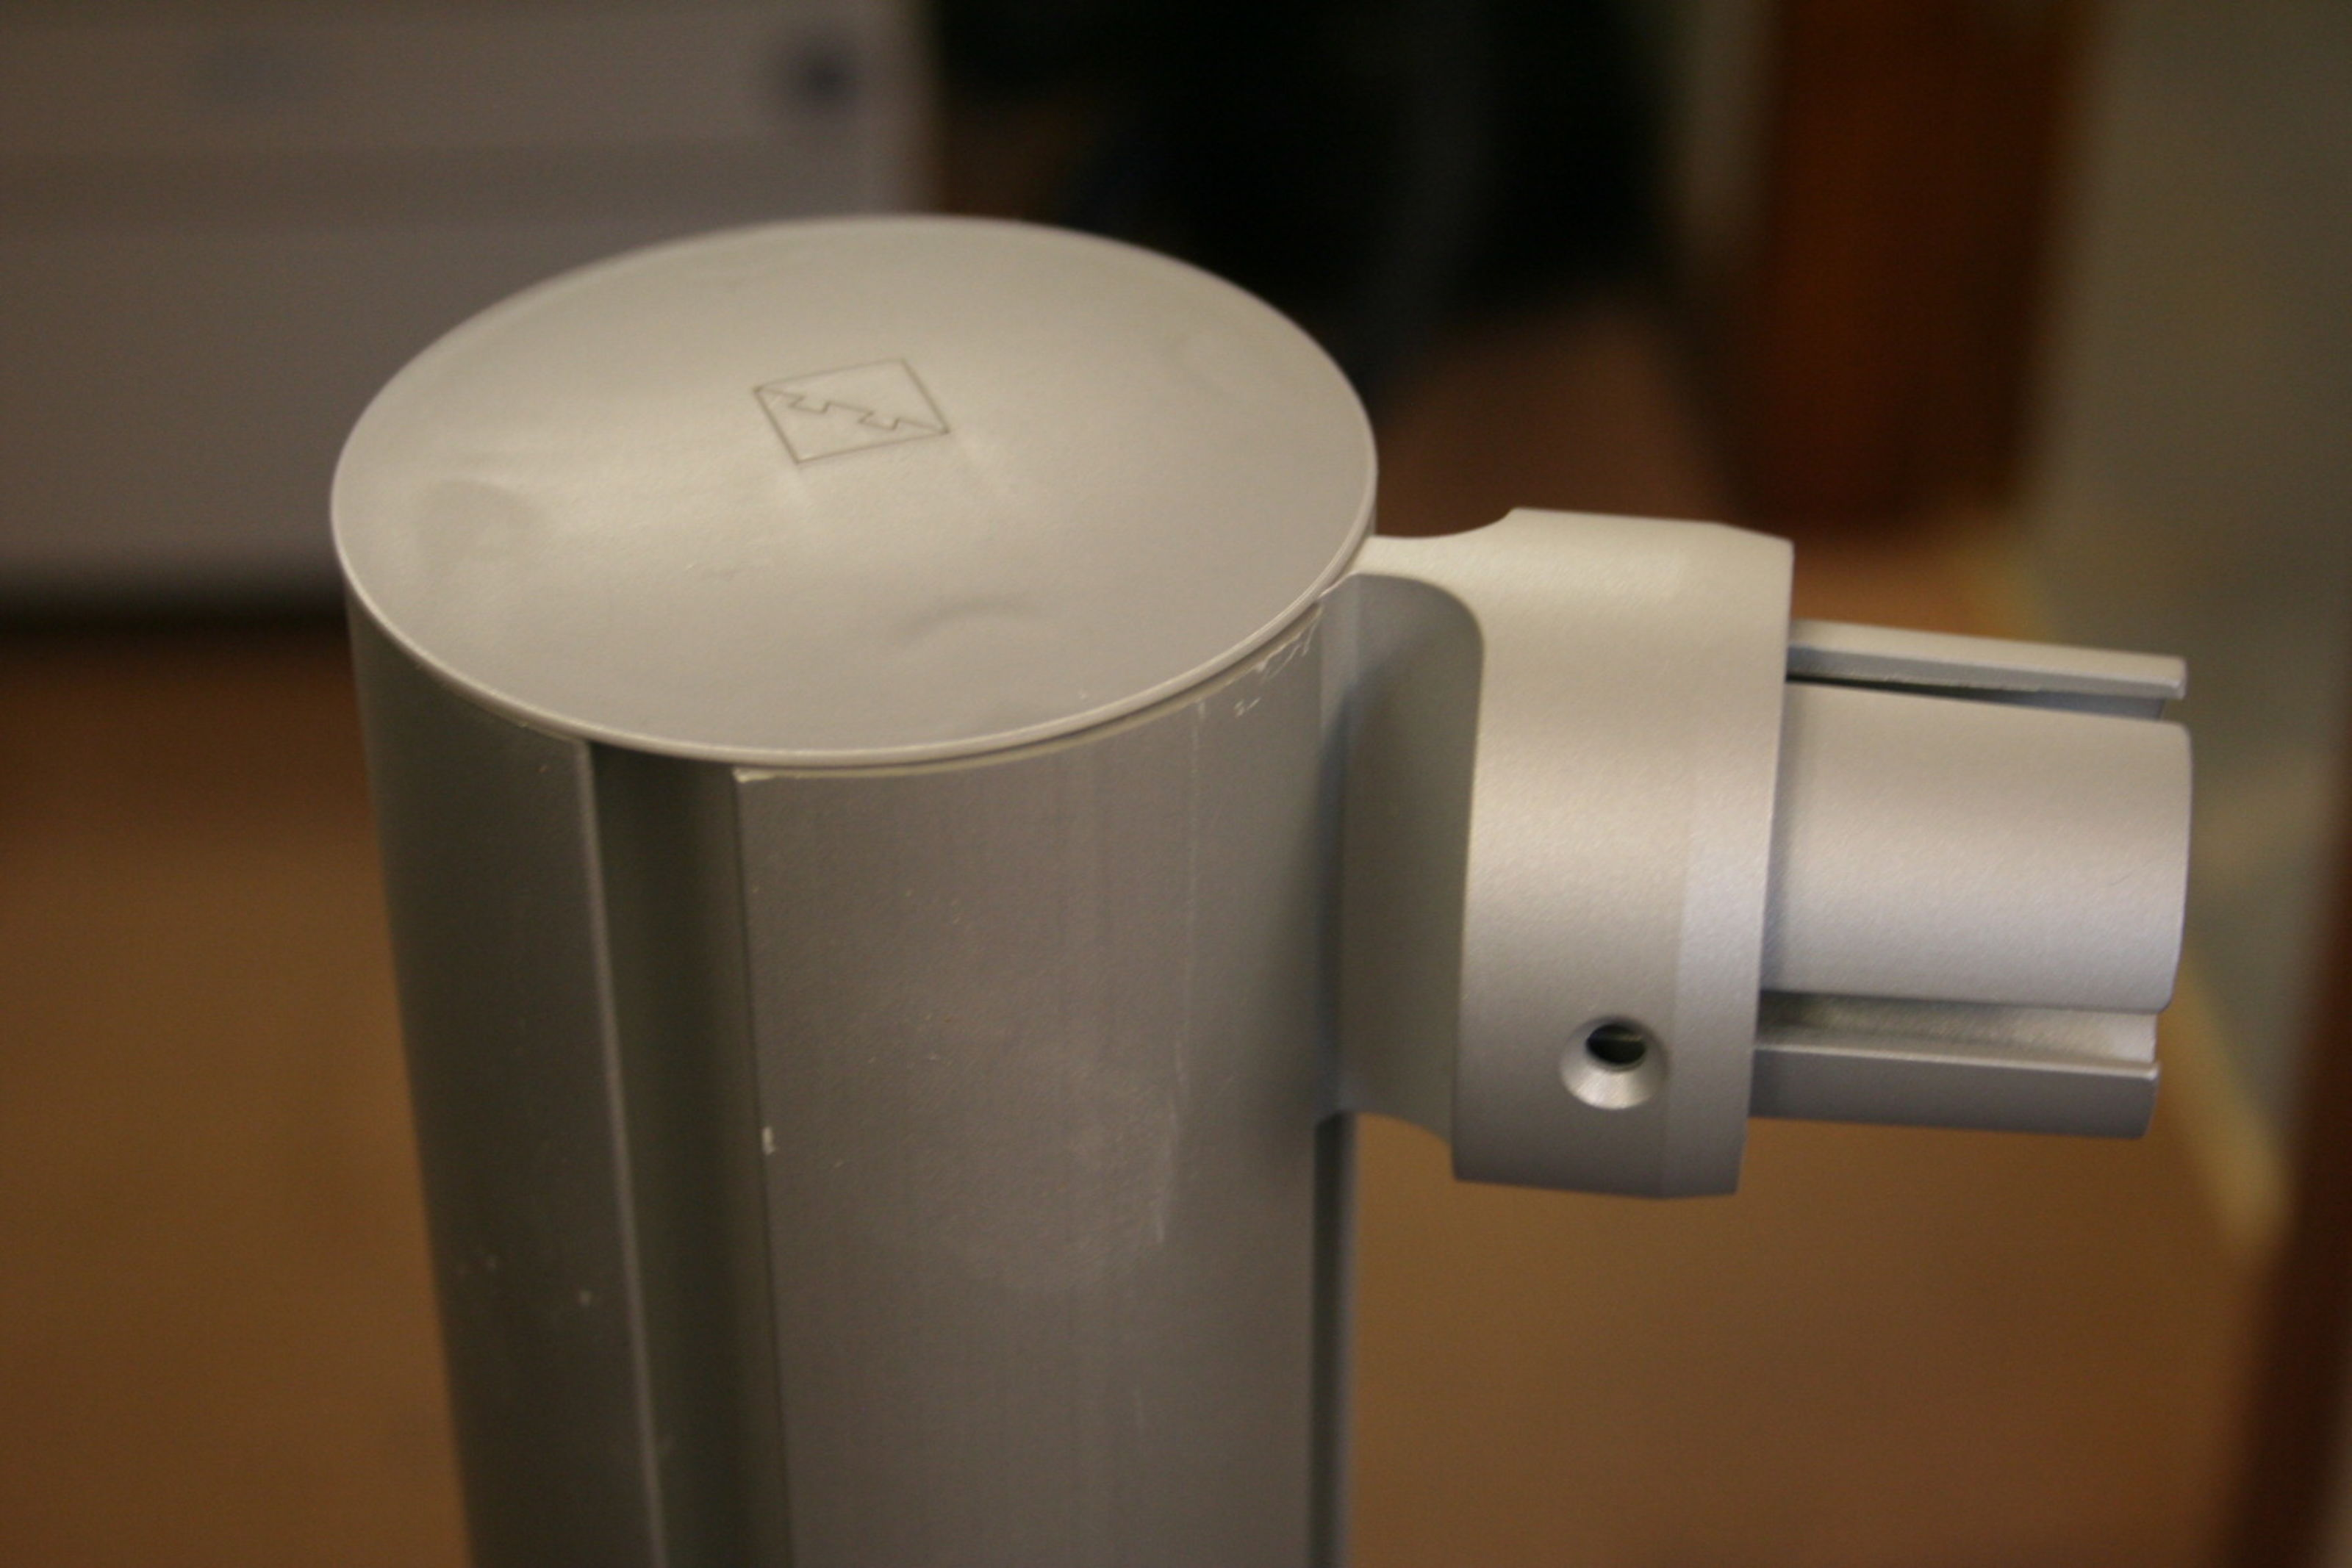 Fusion Deck Newel Post with LD507 Bracket to fix Aluminium Round-Rail; Image 5488